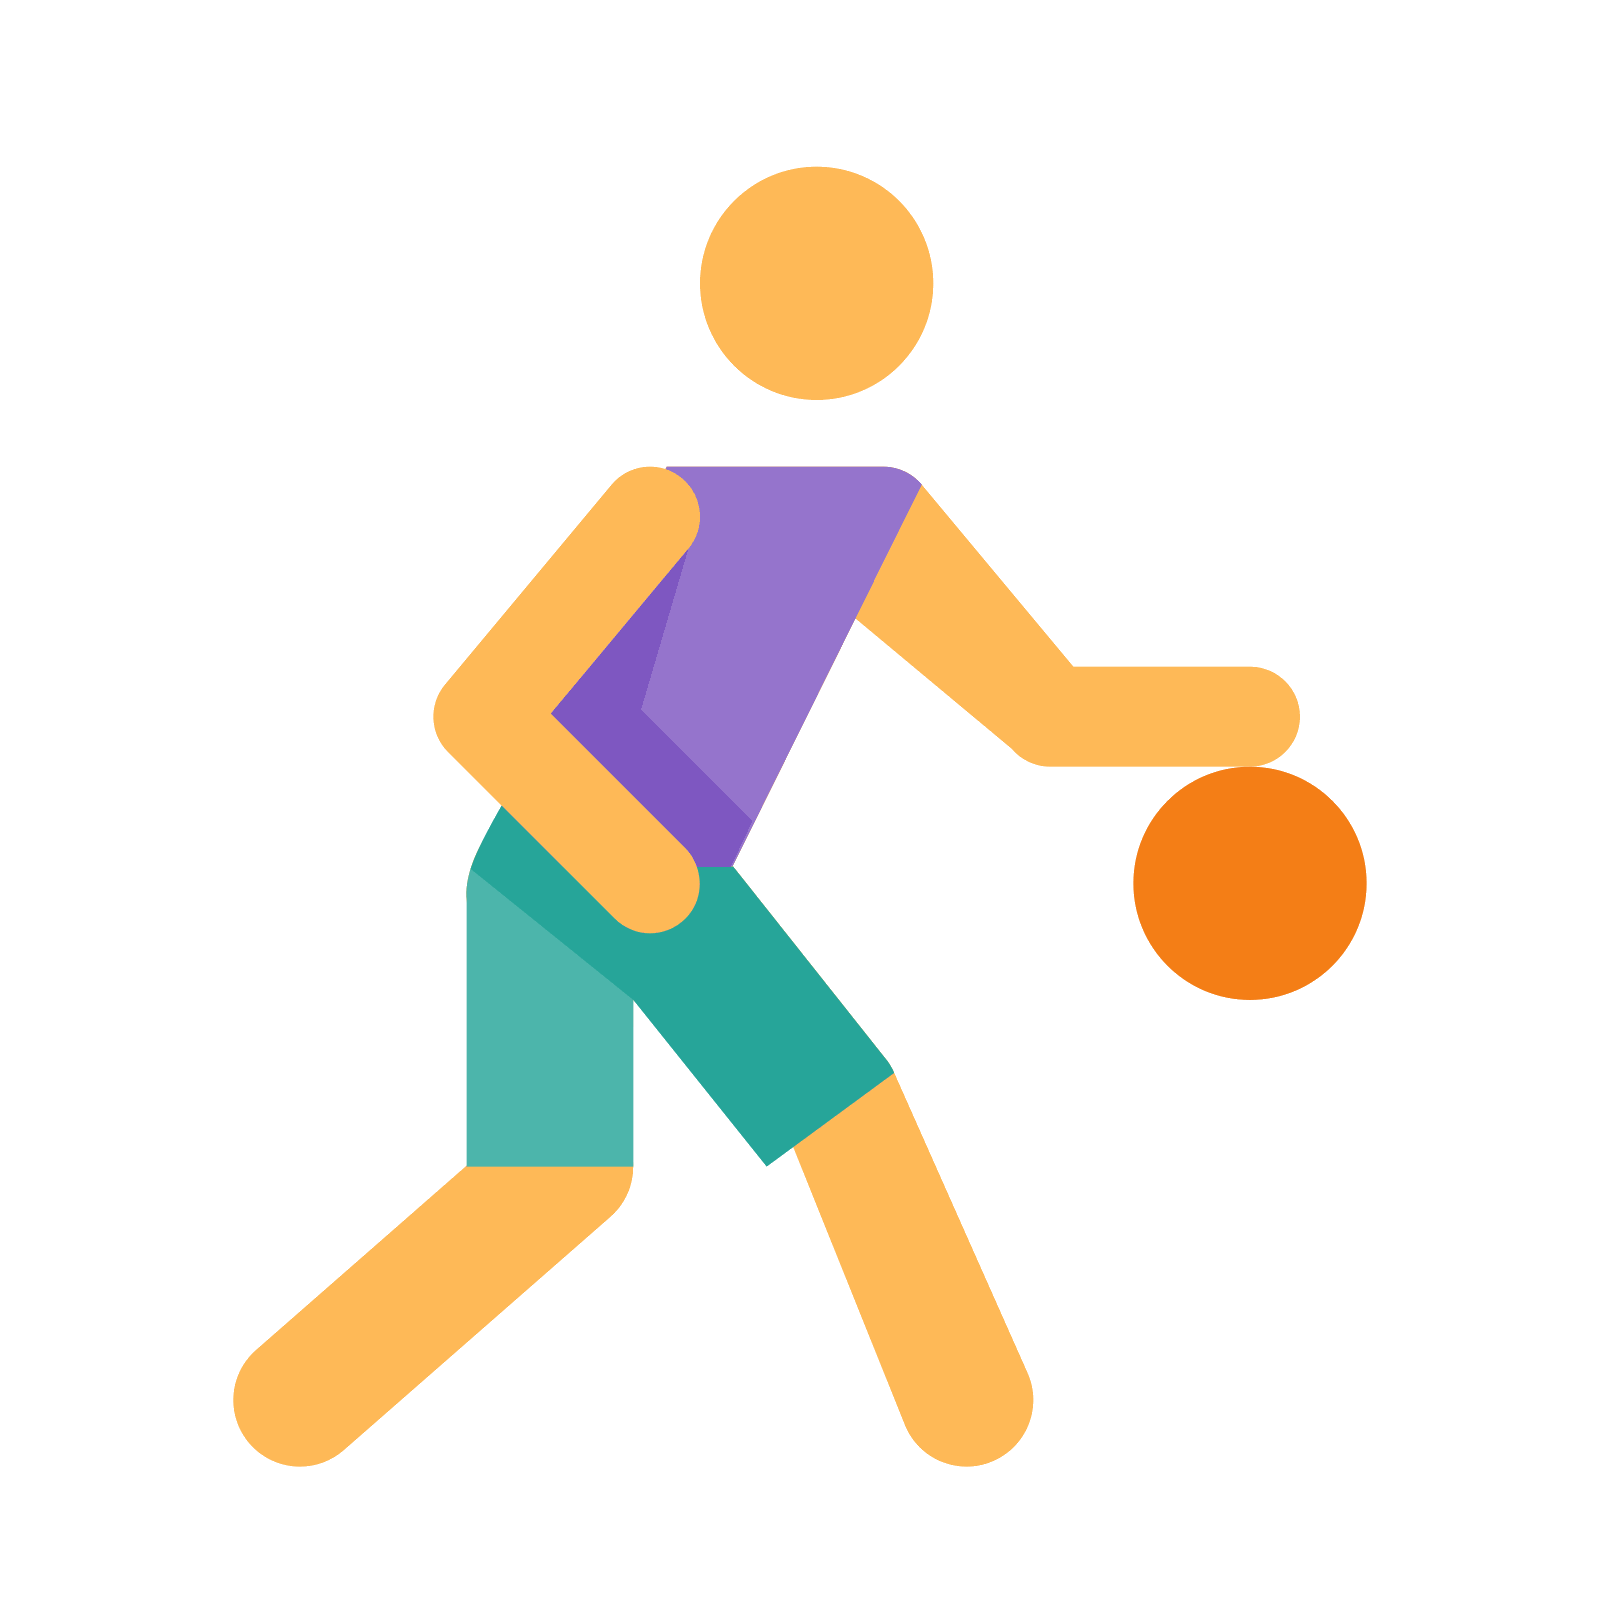 Basketball player shooting clipart clipart freeuse Basketball Player Icon - free download, PNG and vector clipart freeuse